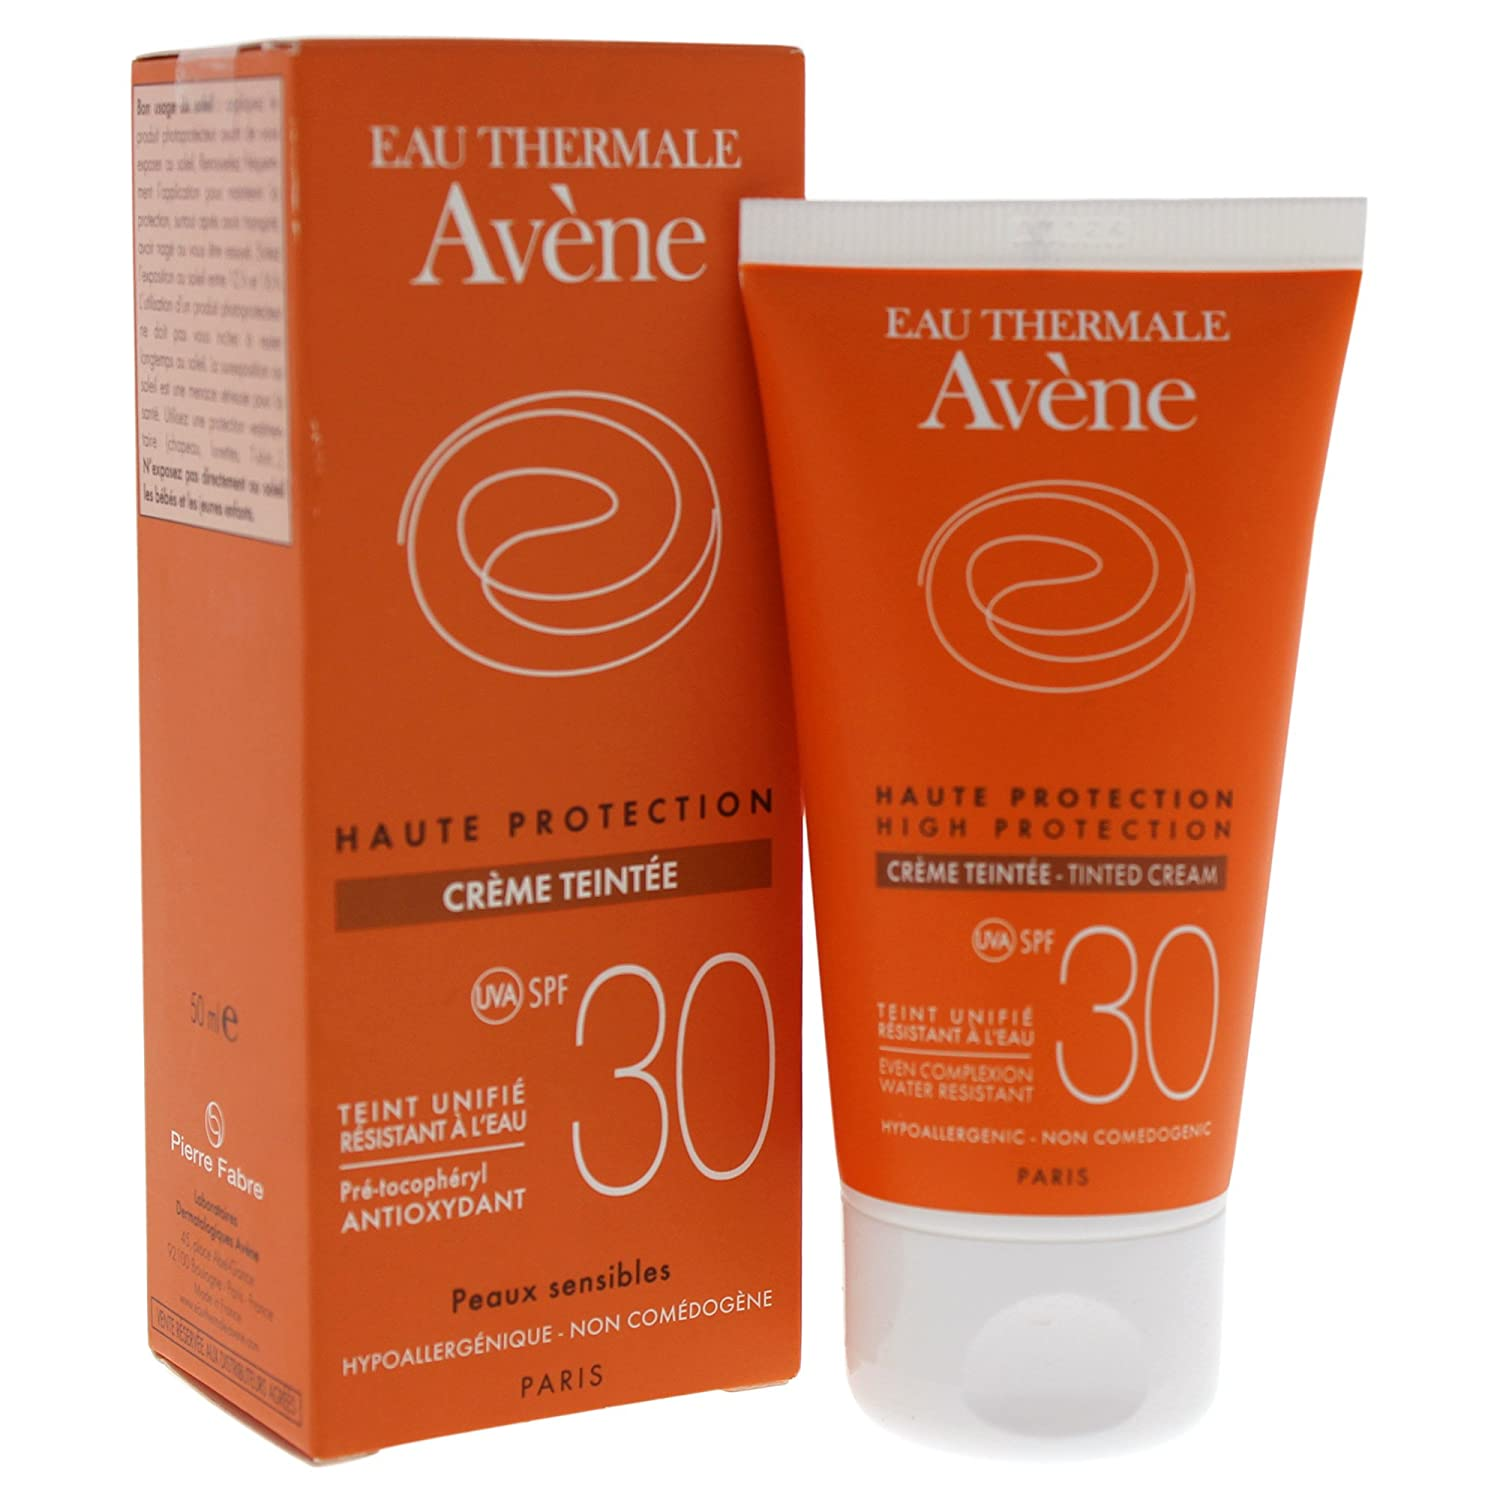 AVENE Crema Coloreada Pieles Sensibles SPF30 50ML Avène 27265